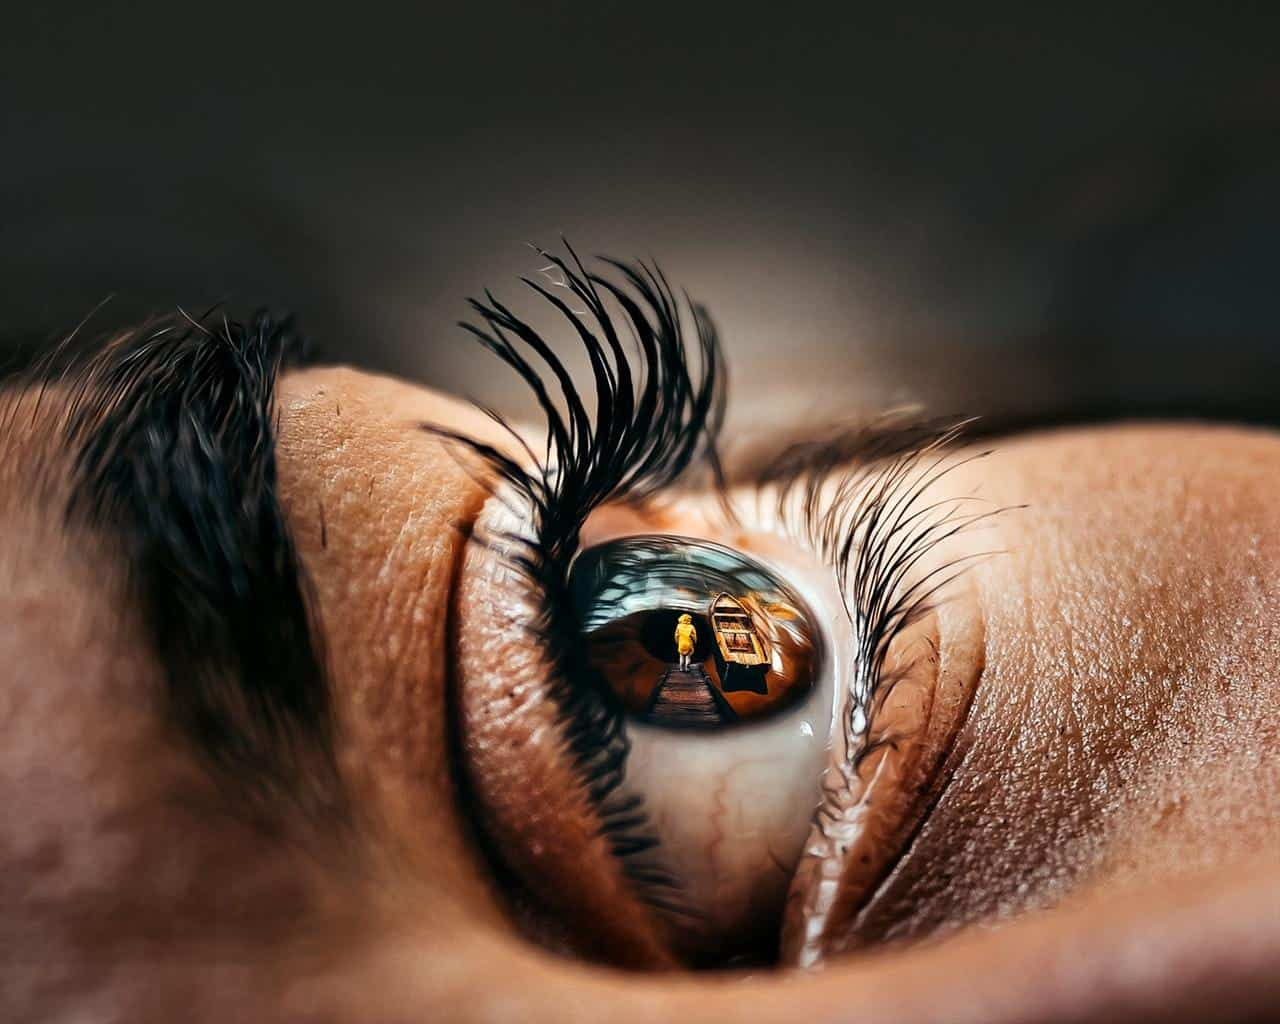 Are Your Eyelashes Turned Inward or Outward?